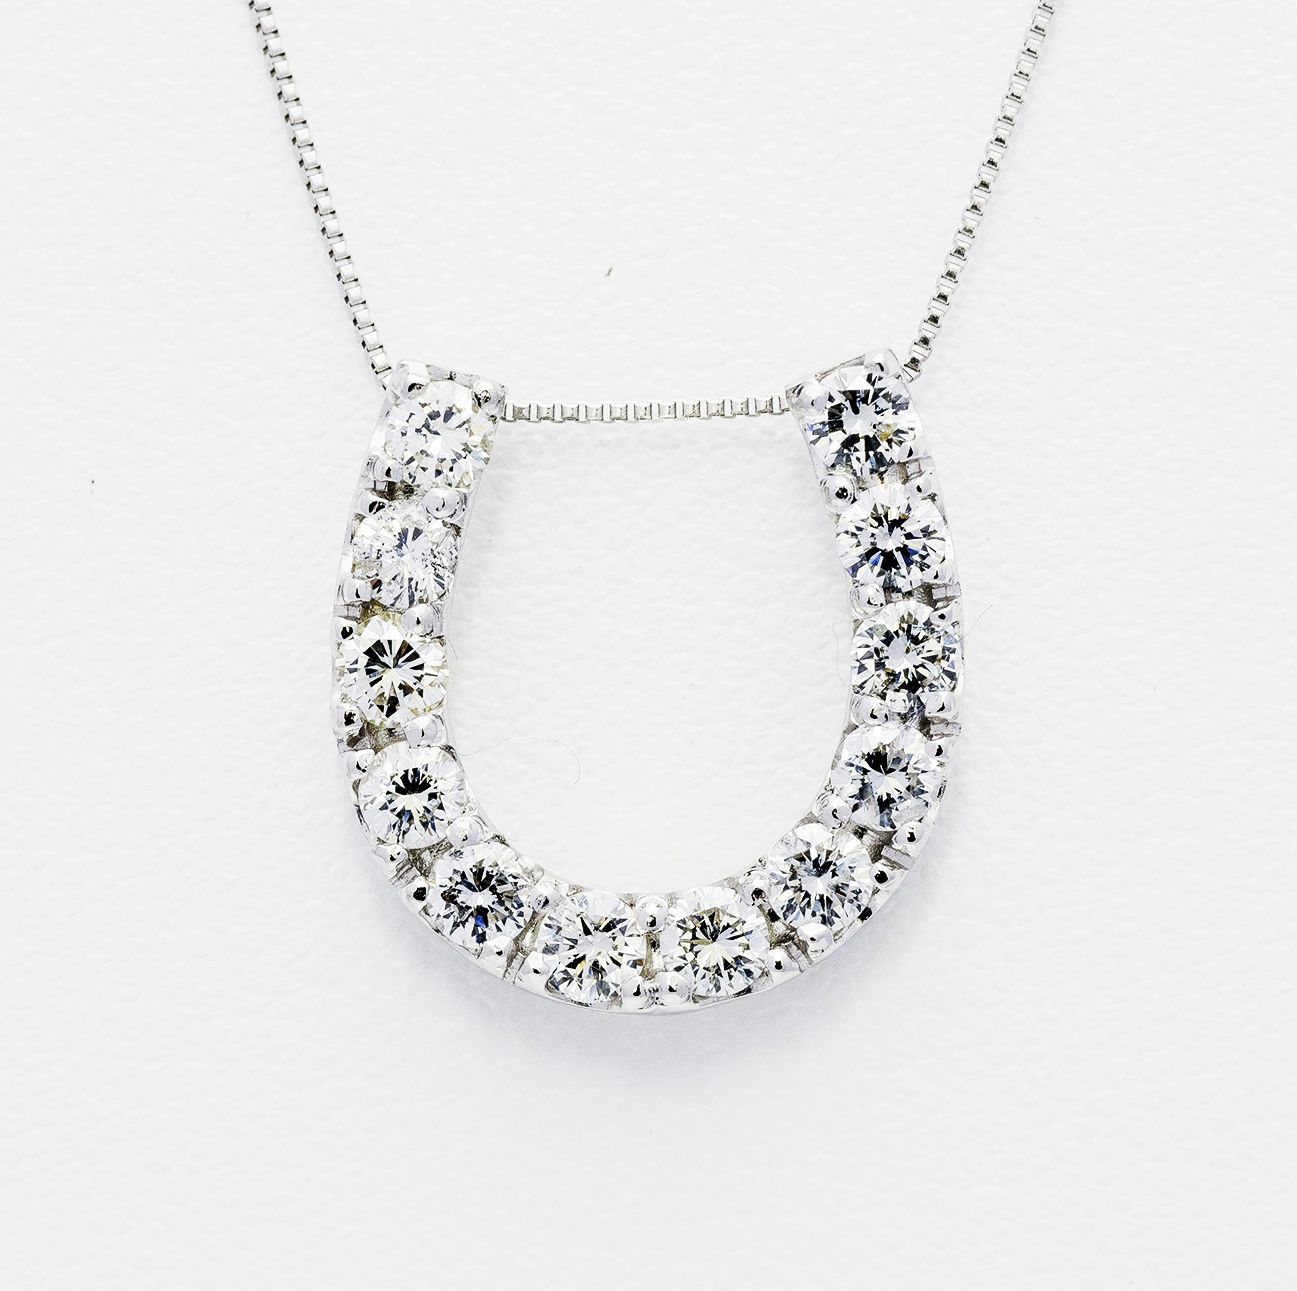 0.9ct Diamond Necklace SIN10759